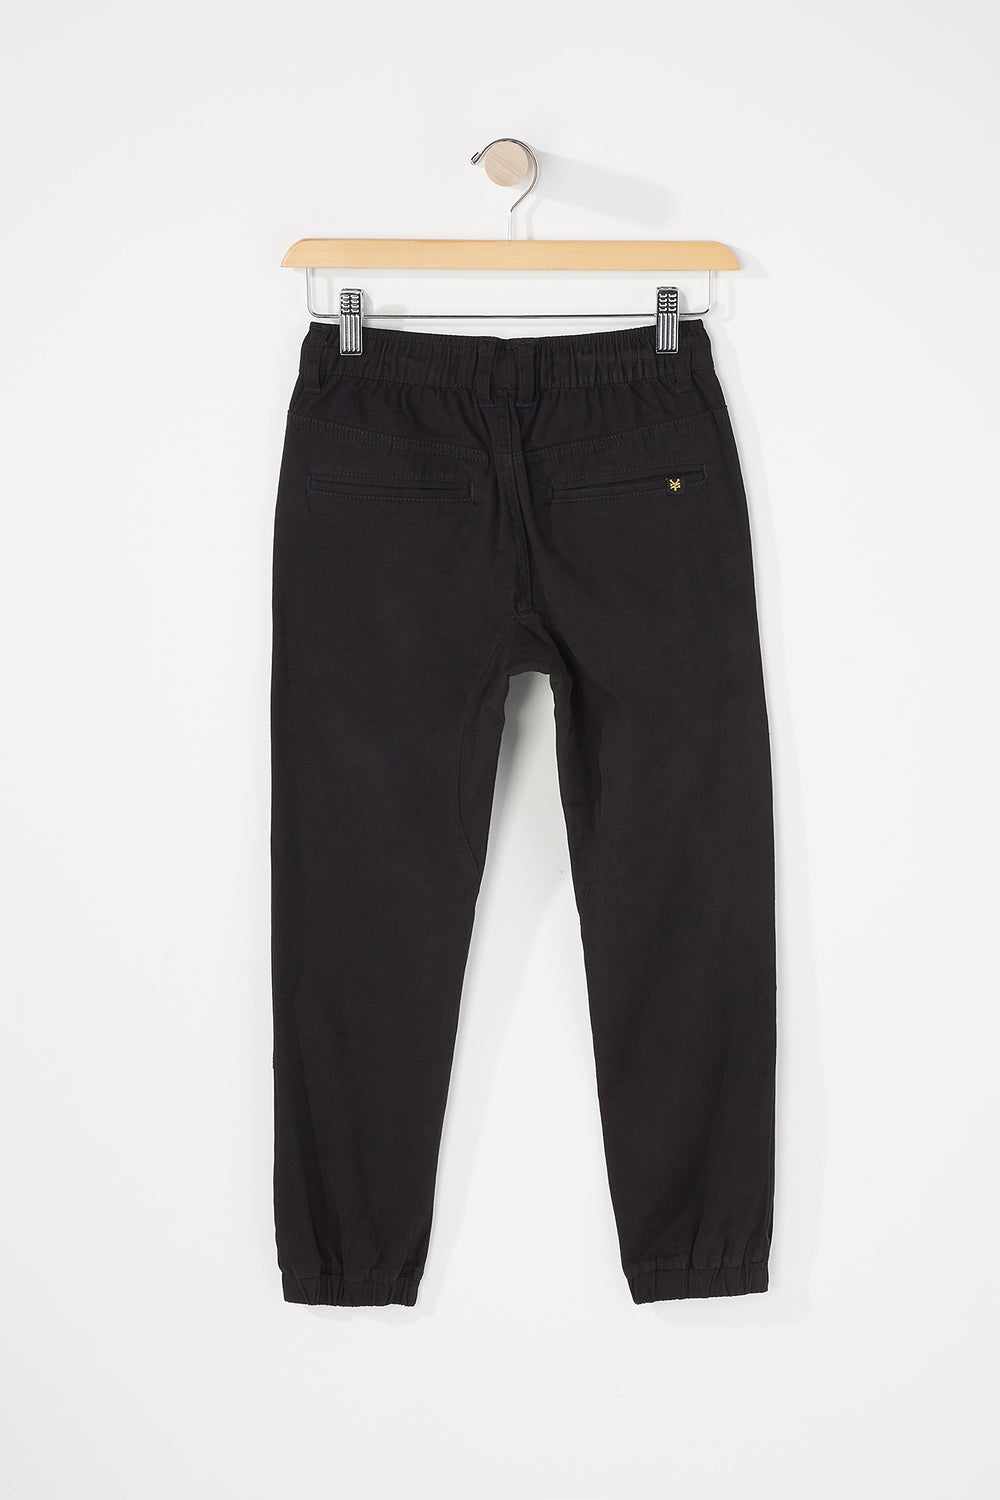 Jogger Avec Zip Zoo York Junior Noir